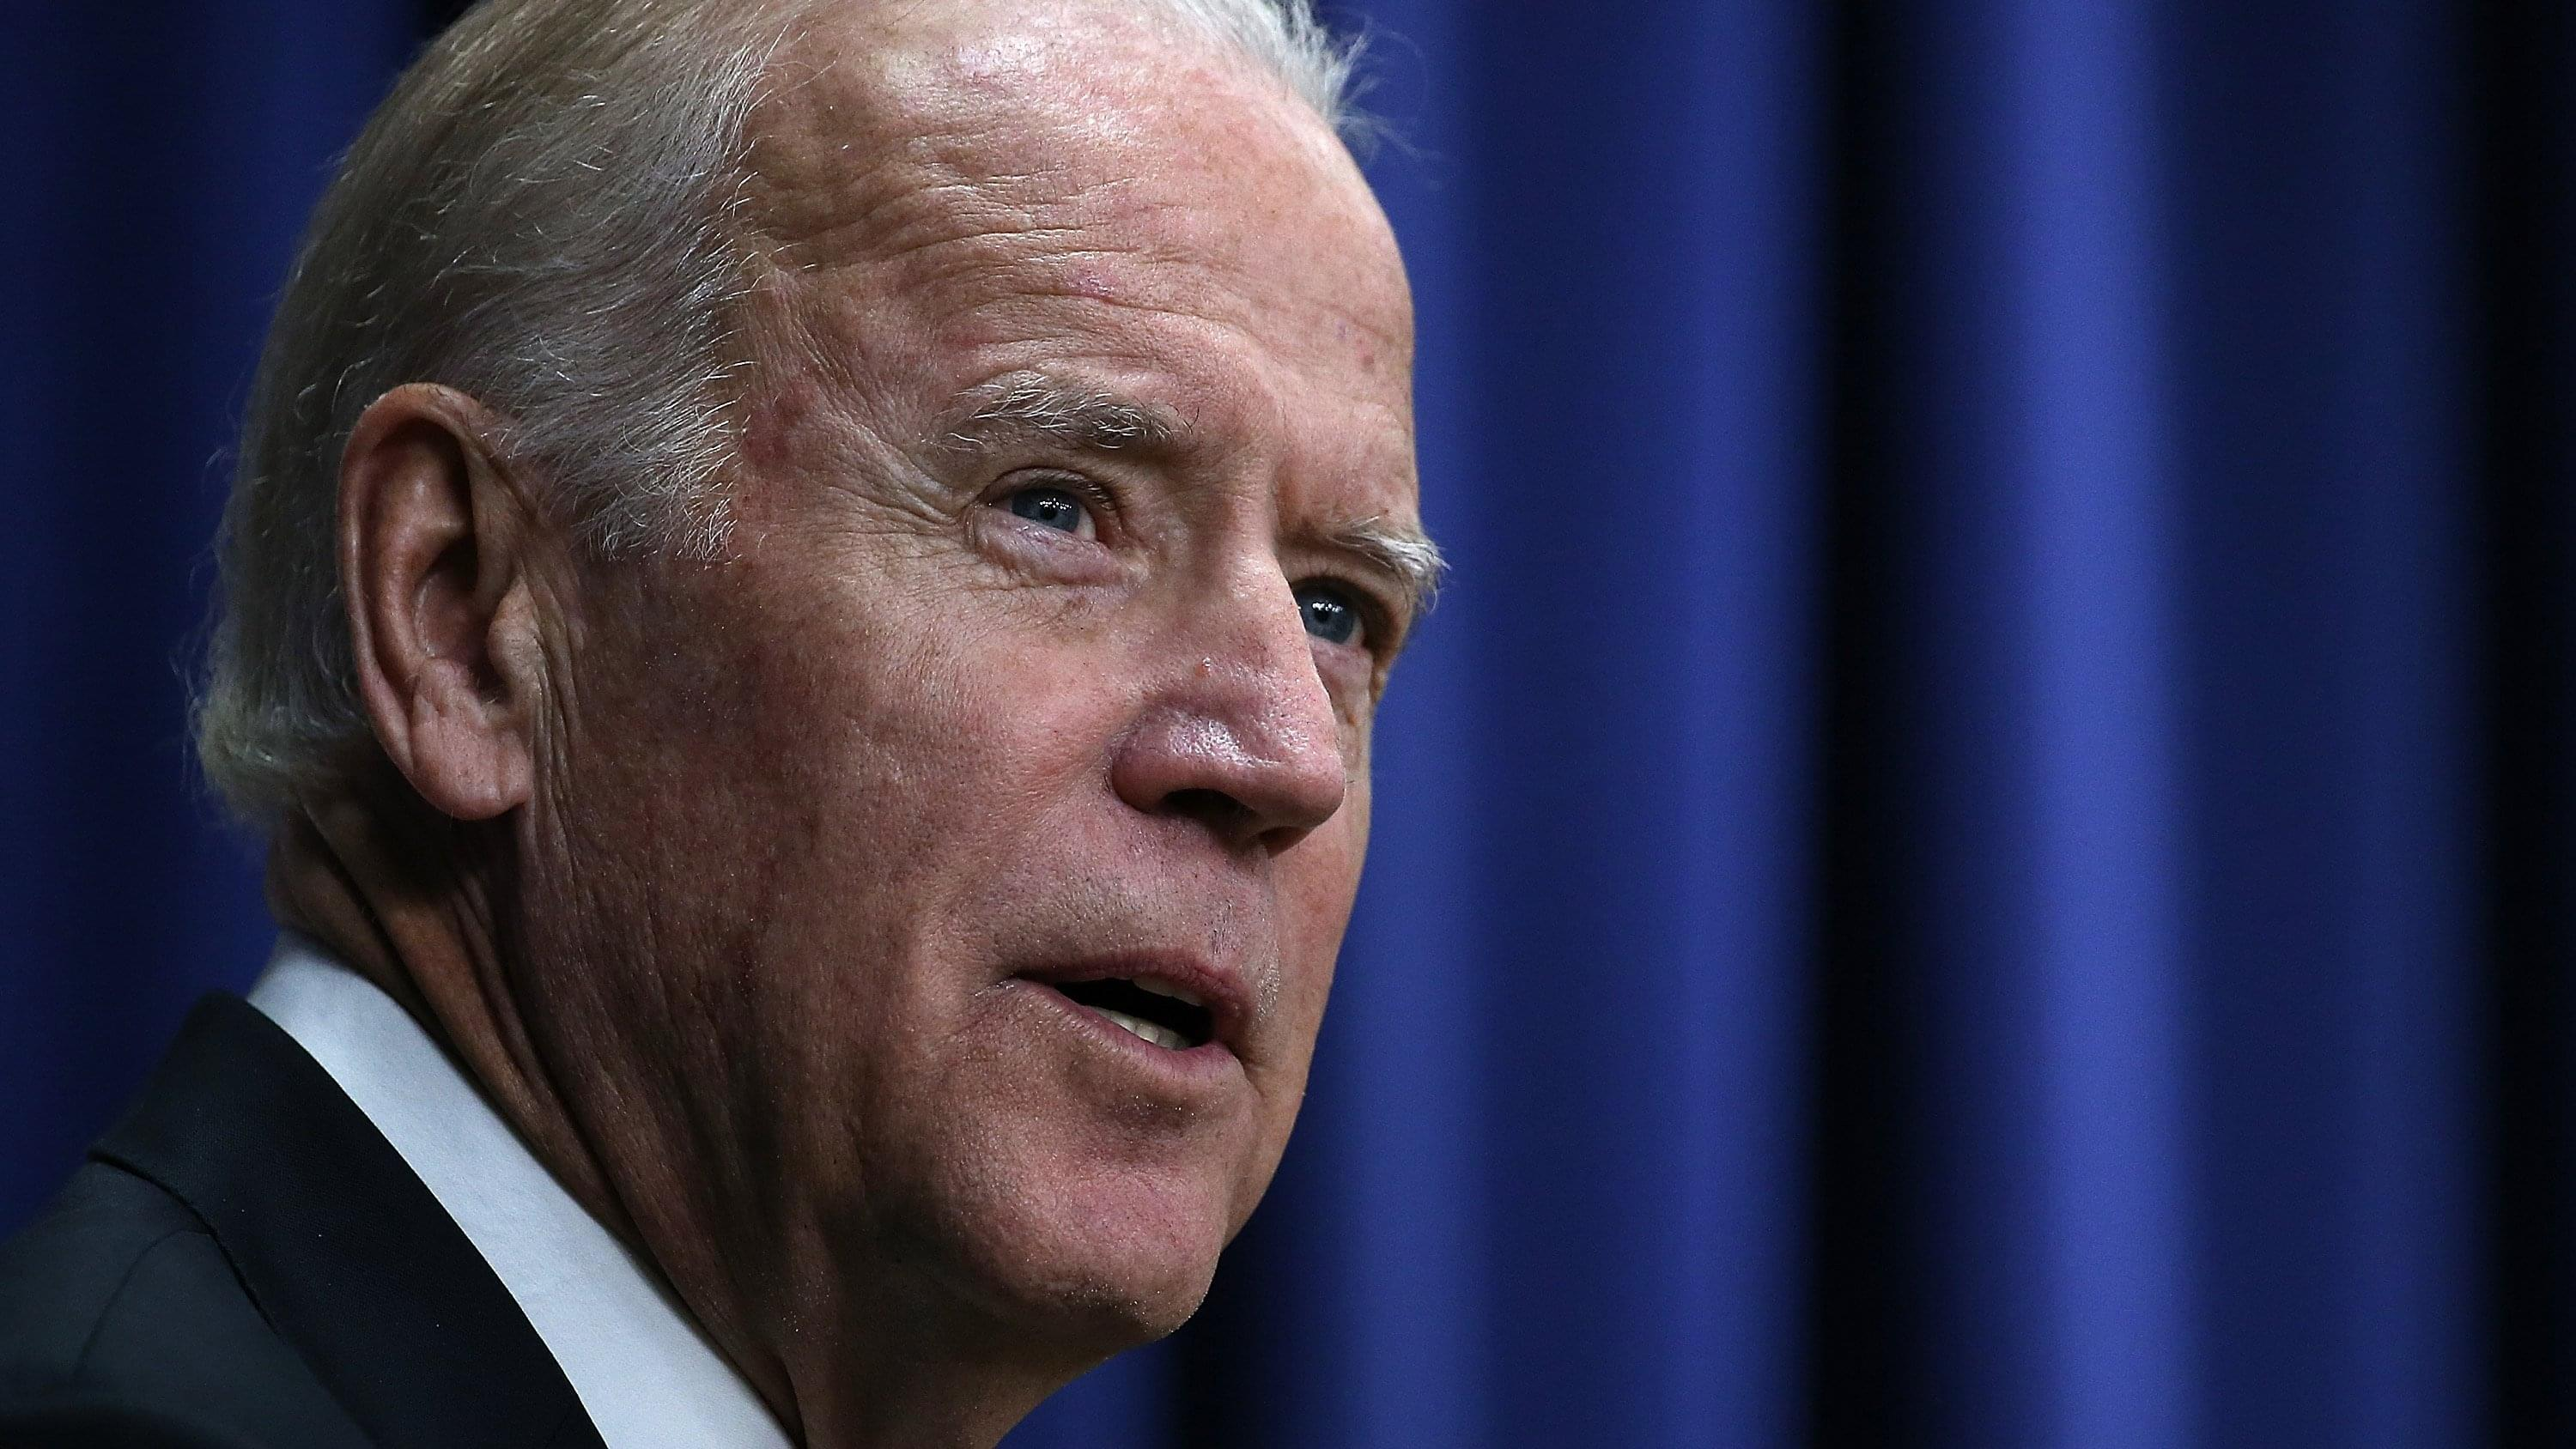 Joe Biden teases possible 2020 run: Save your energy, 'I may need it in a few weeks'